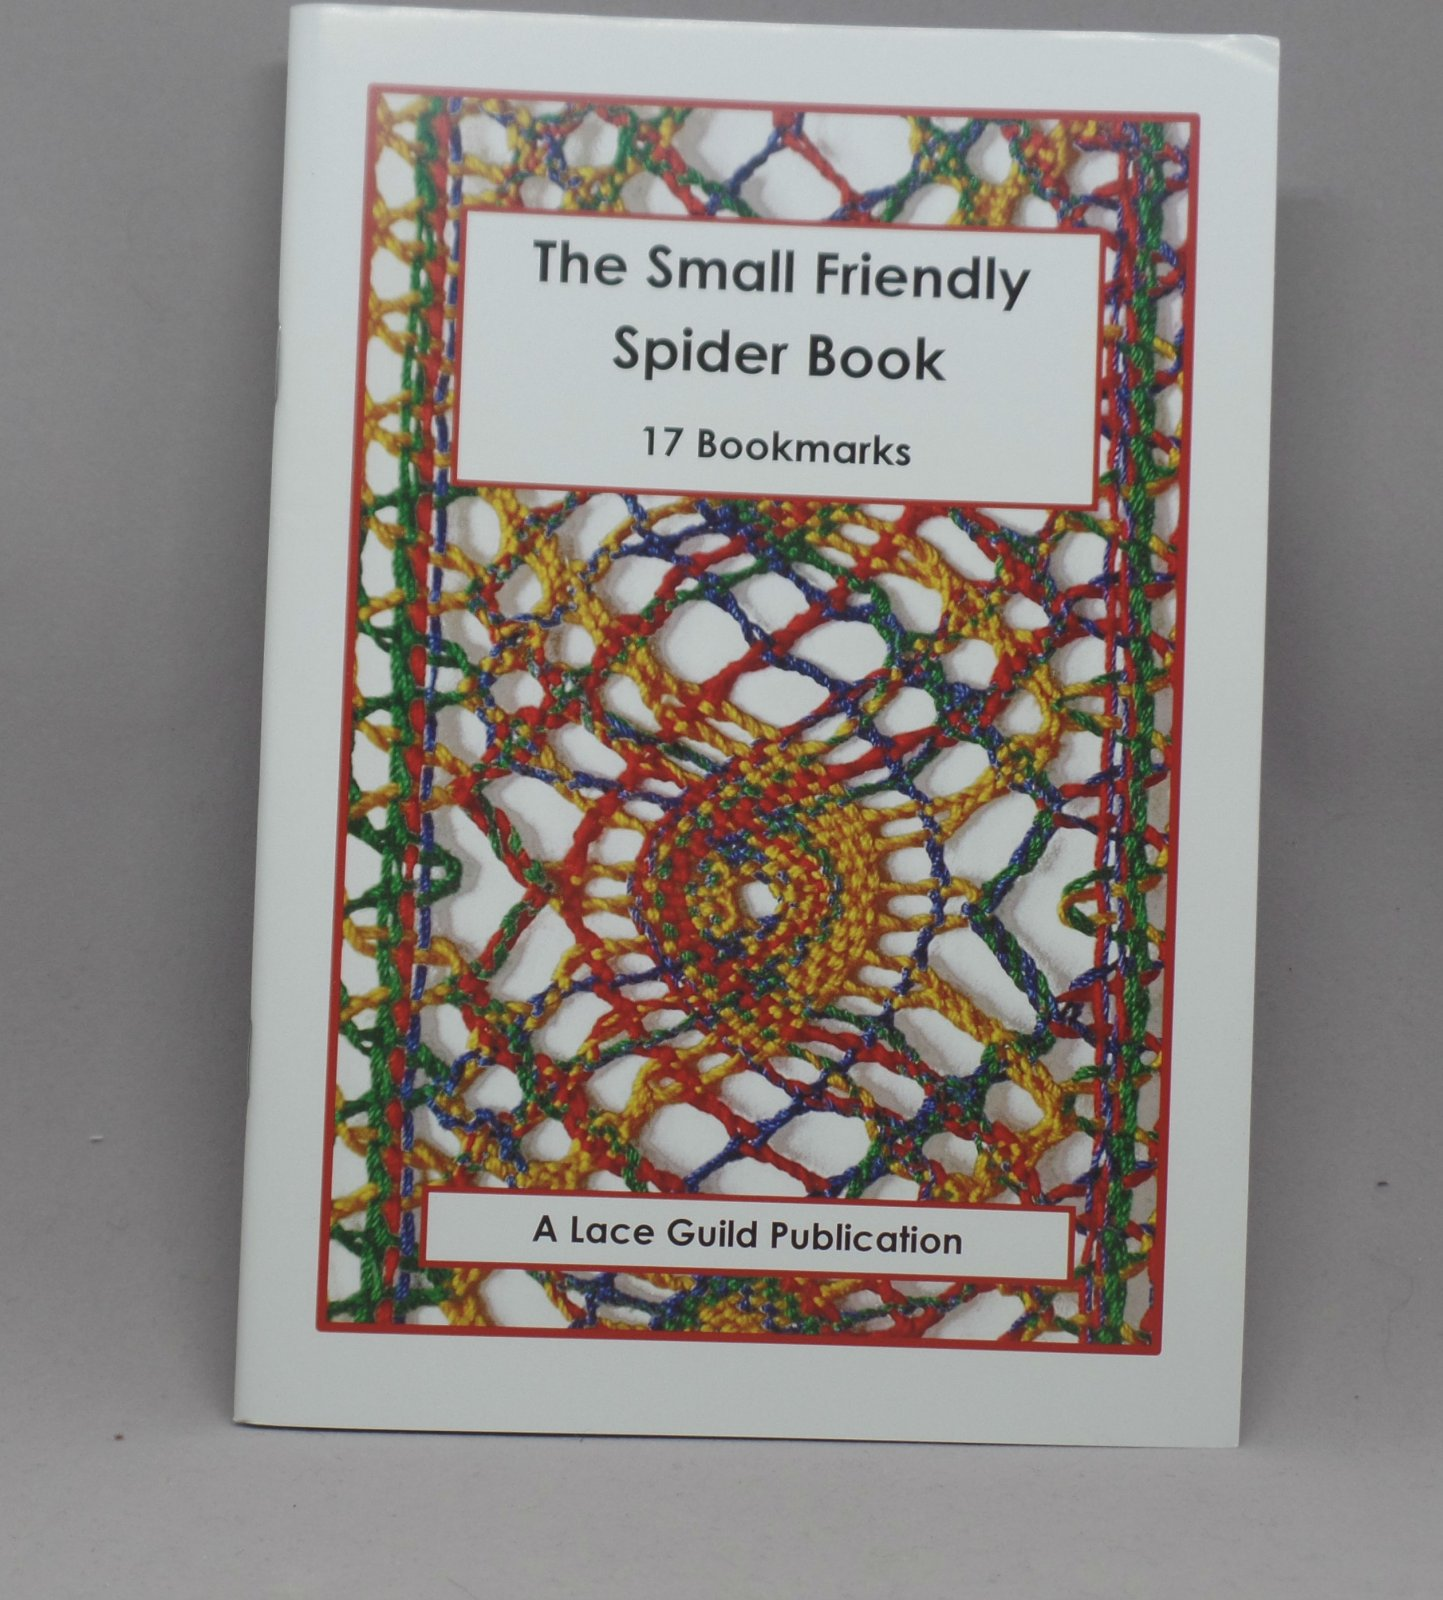 The Small Friendly Spider Book